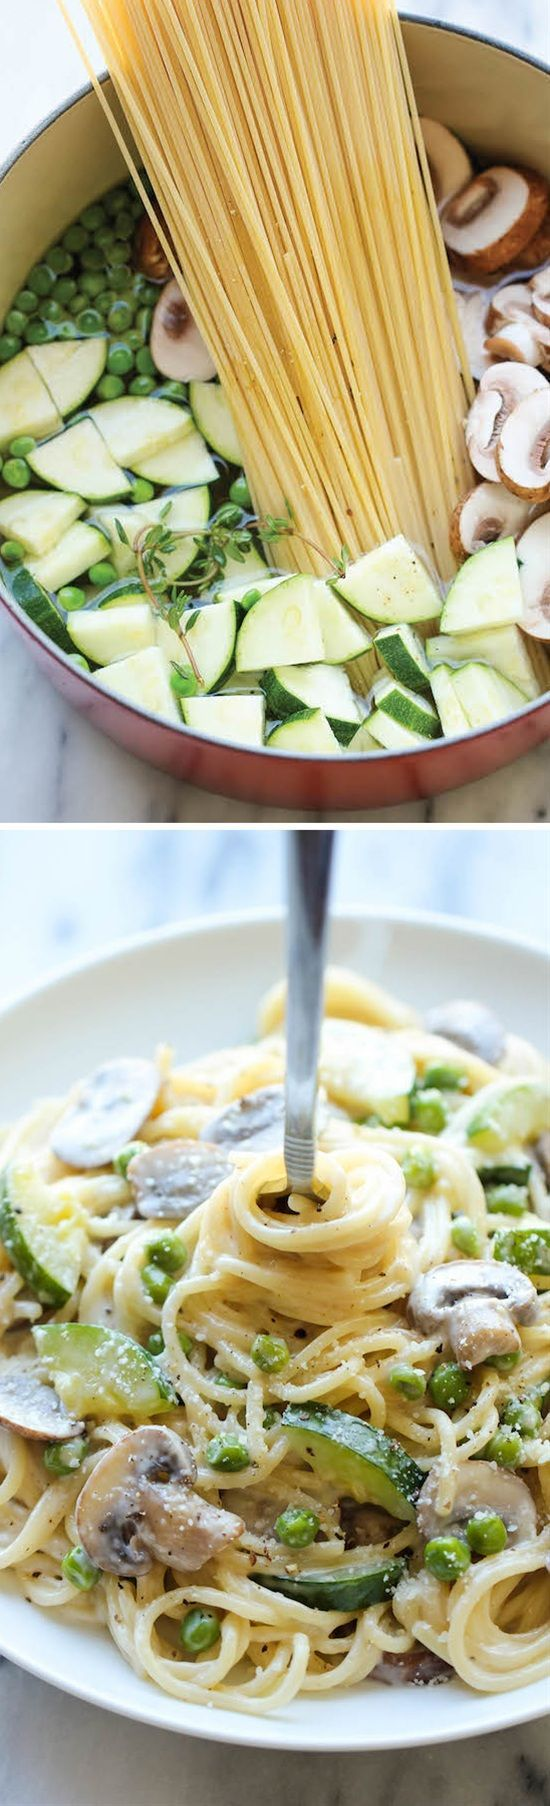 Need more healthy meal recipes that you can make in less than 30 minutes? The good news is that even when youre eating…